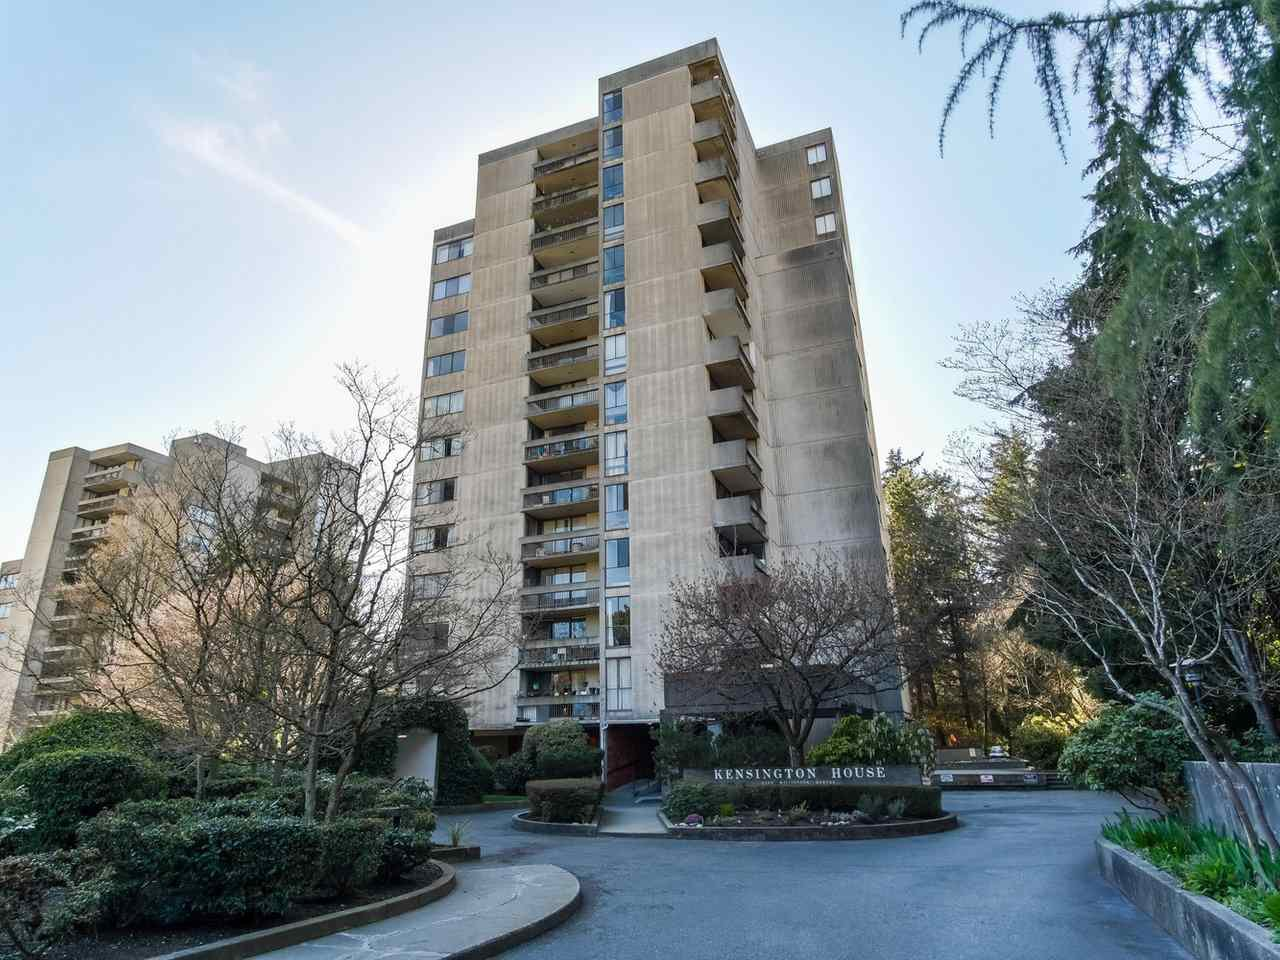 """Main Photo: 402 6689 WILLINGDON Avenue in Burnaby: Metrotown Condo for sale in """"KENSINGTON HOUSE"""" (Burnaby South)  : MLS®# R2447203"""